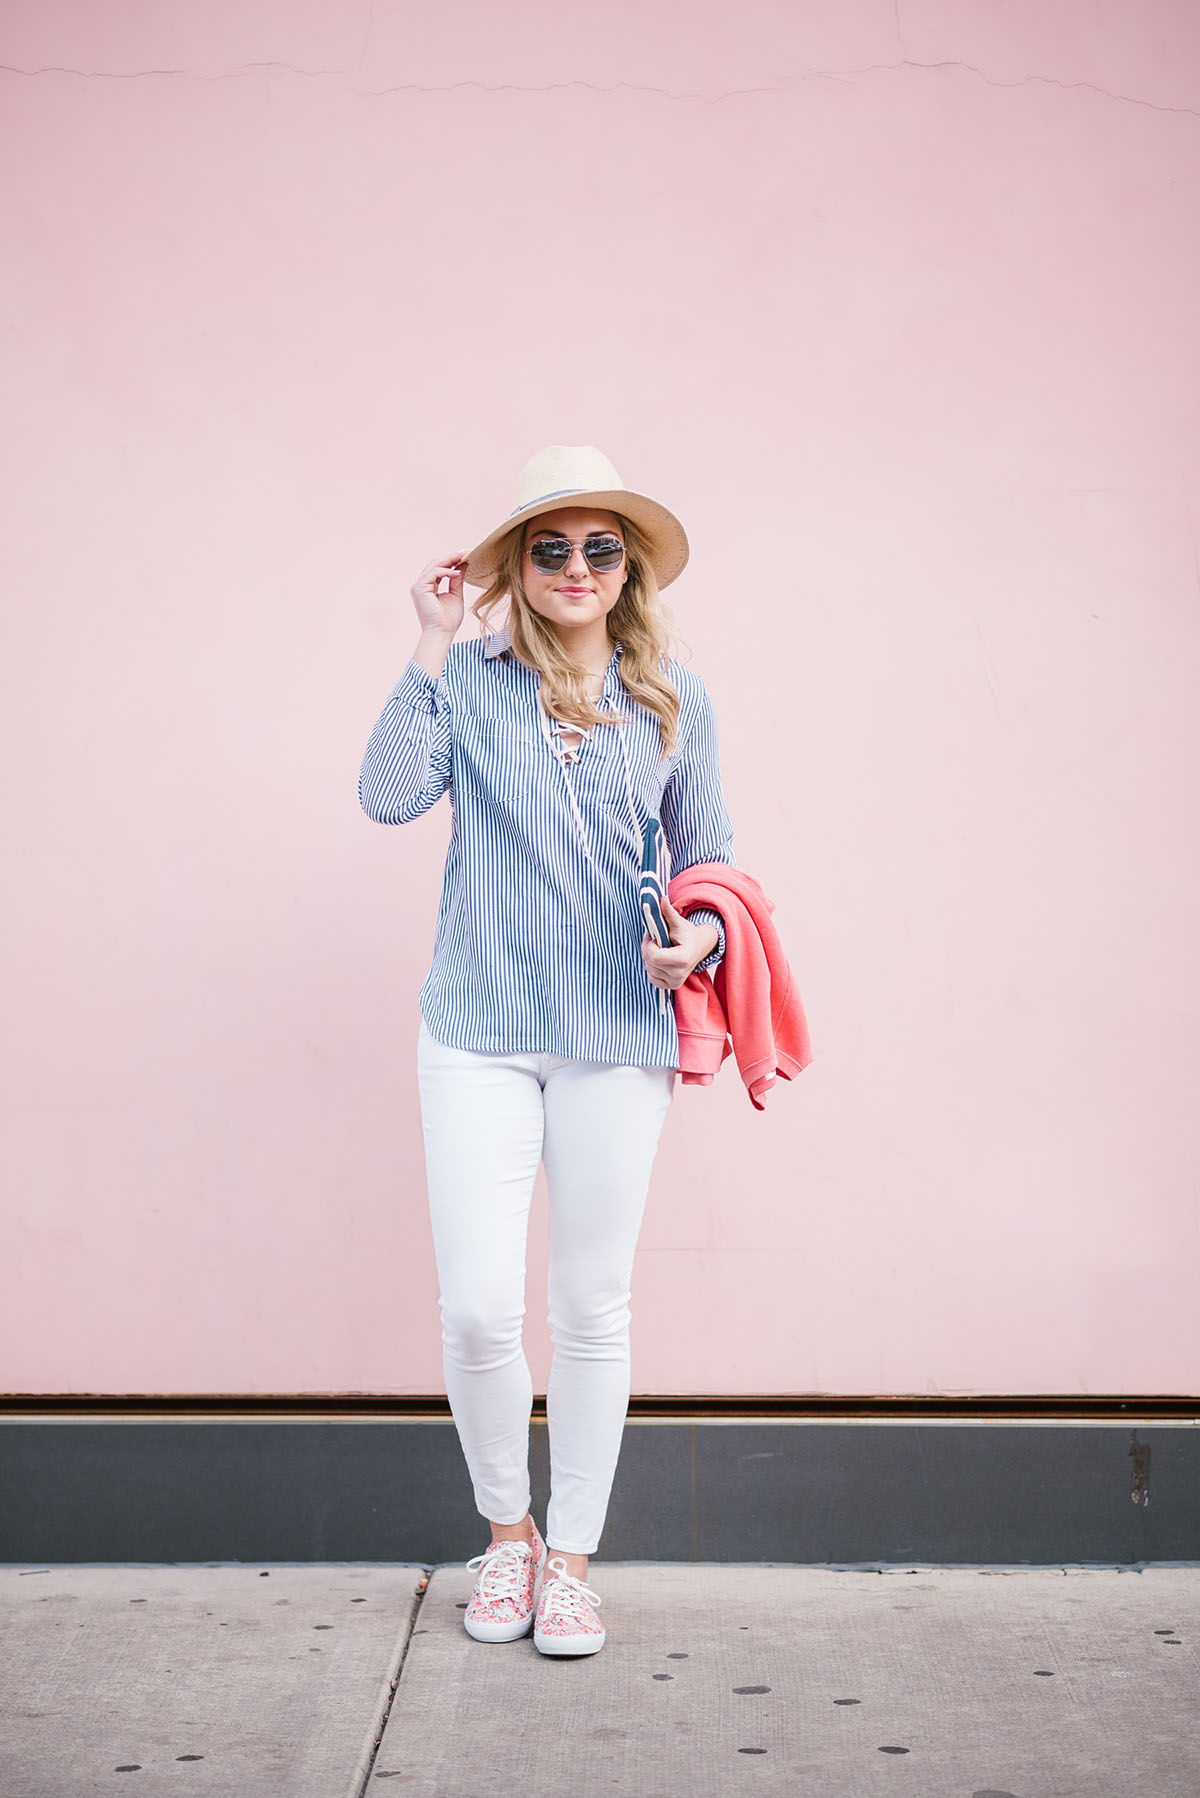 10d45371eb4 Bows   Sequins wearing white jeans for spring with a blue and white striped  shirt.